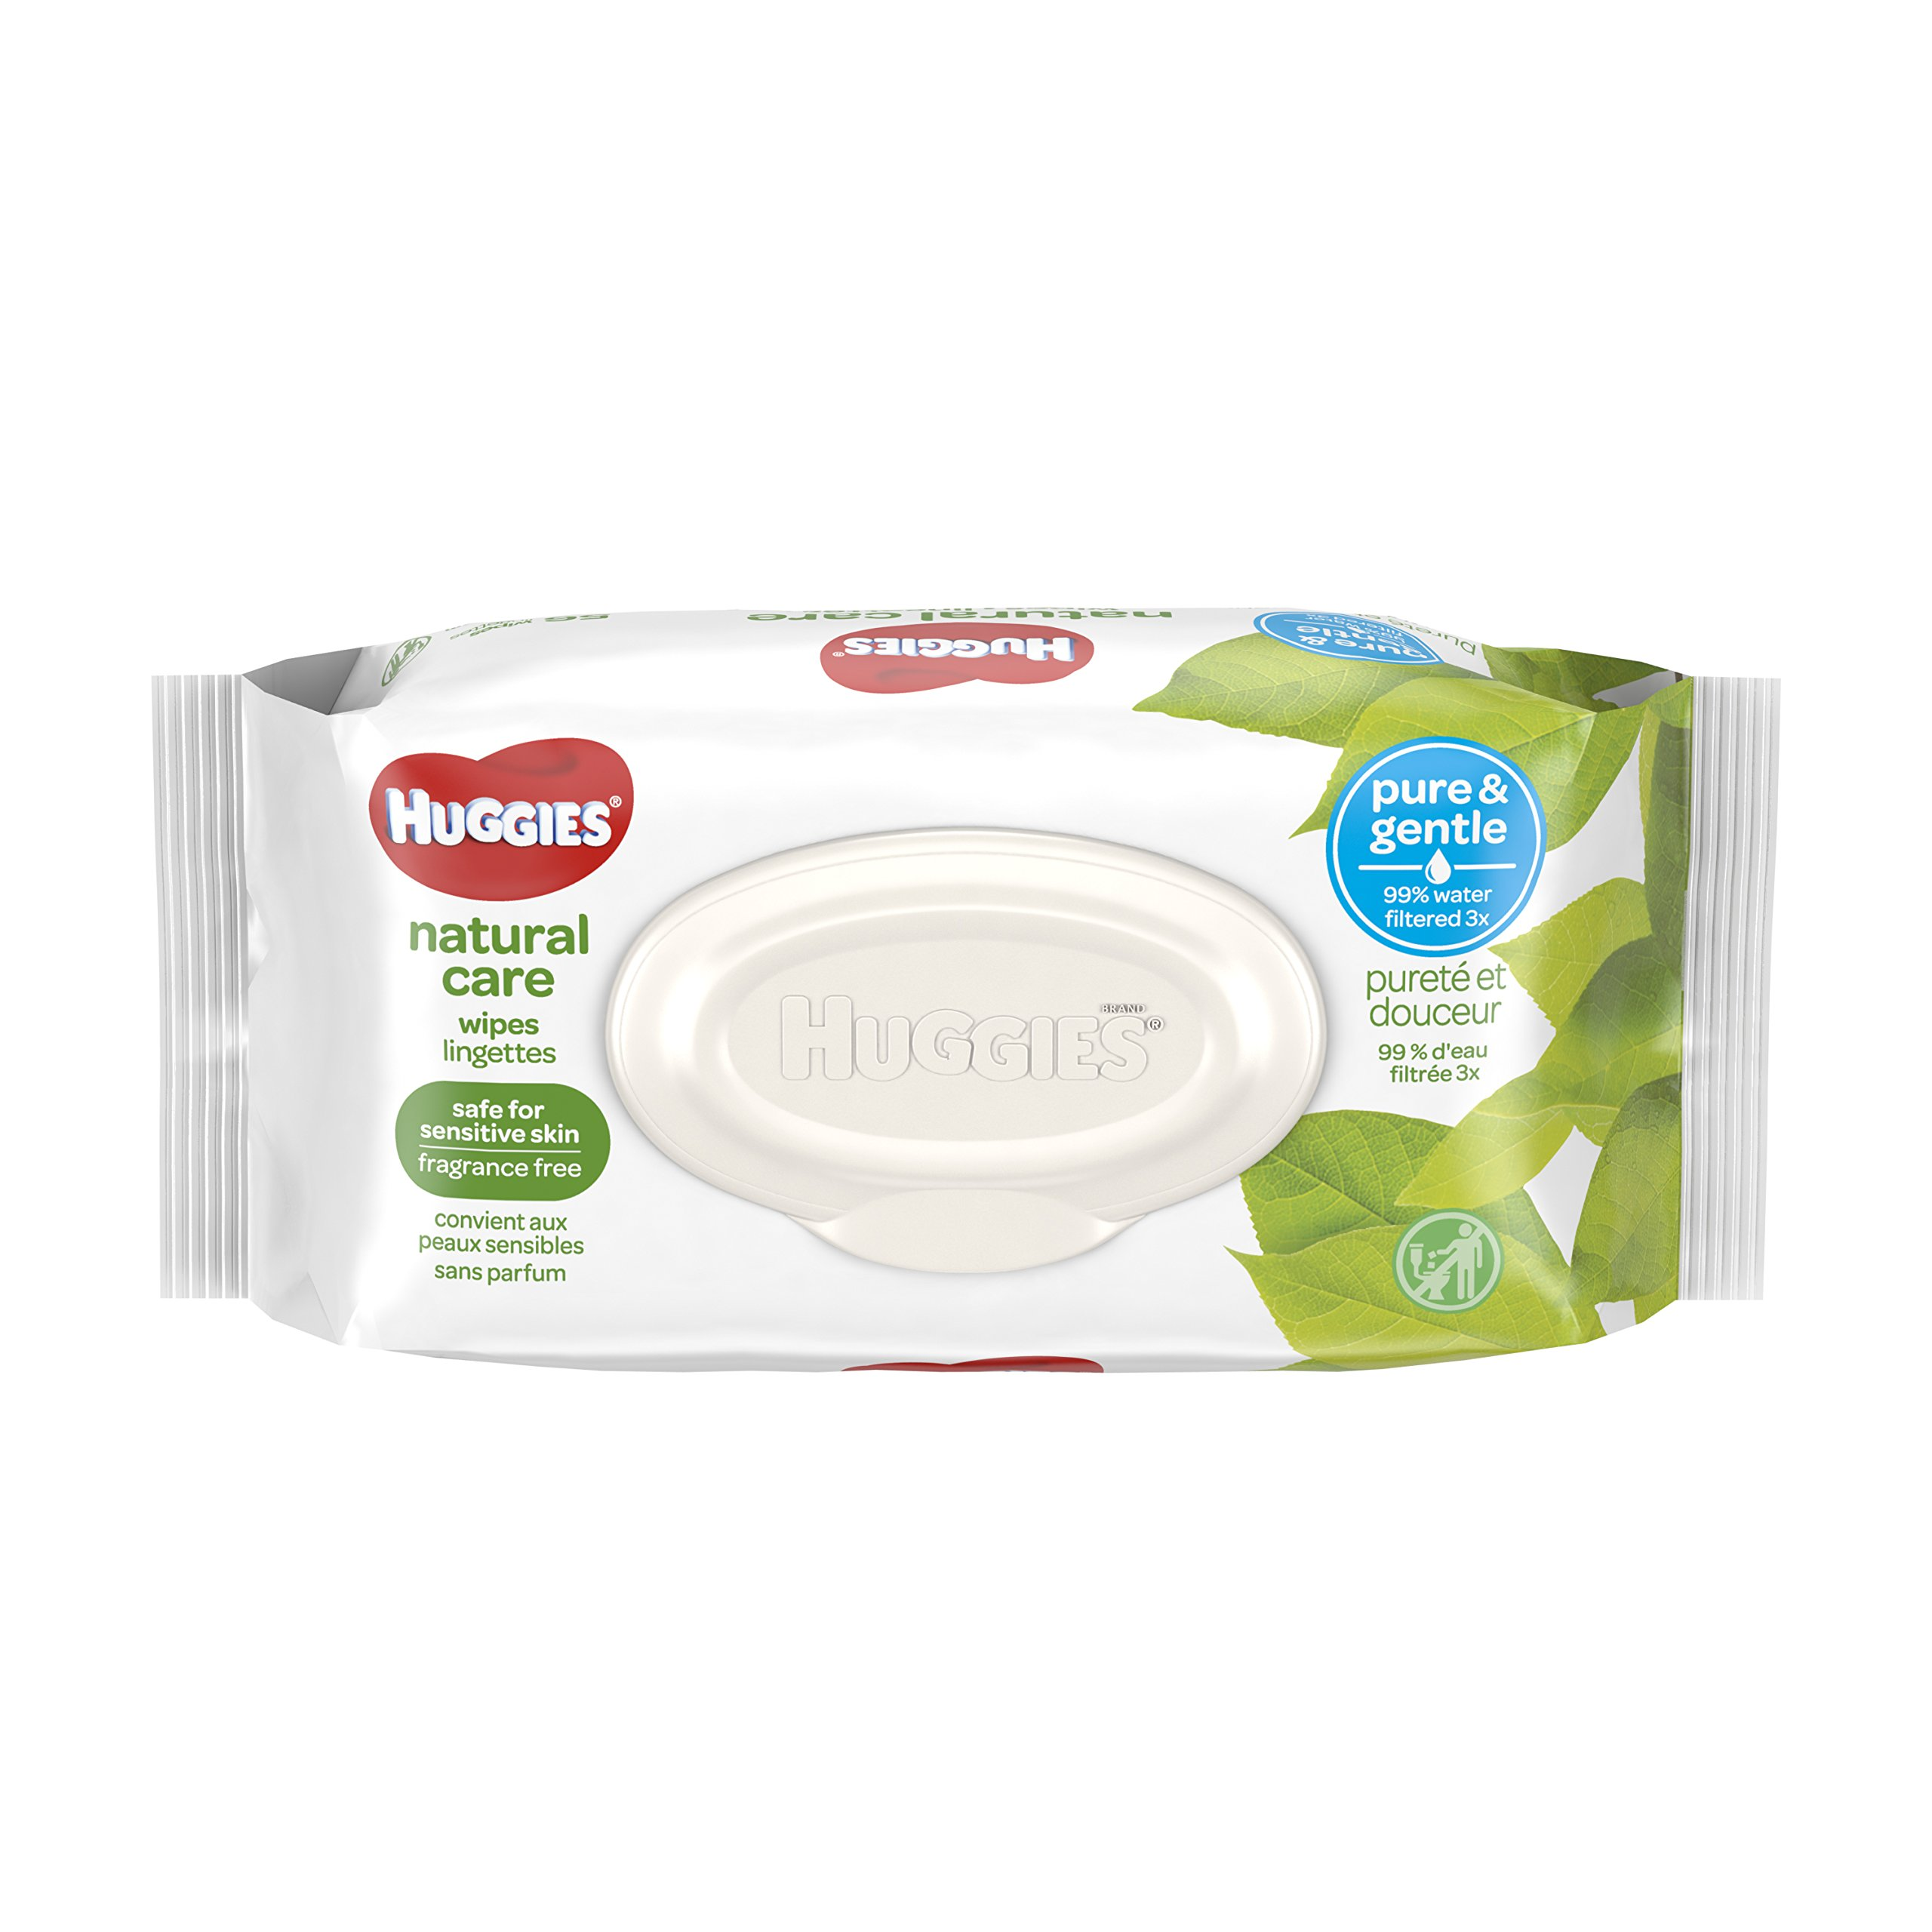 HUGGIES Natural Care Unscented Baby Wipes, Sensitive, Water-Based, 8 Flip-top Packs, 448 Count Total